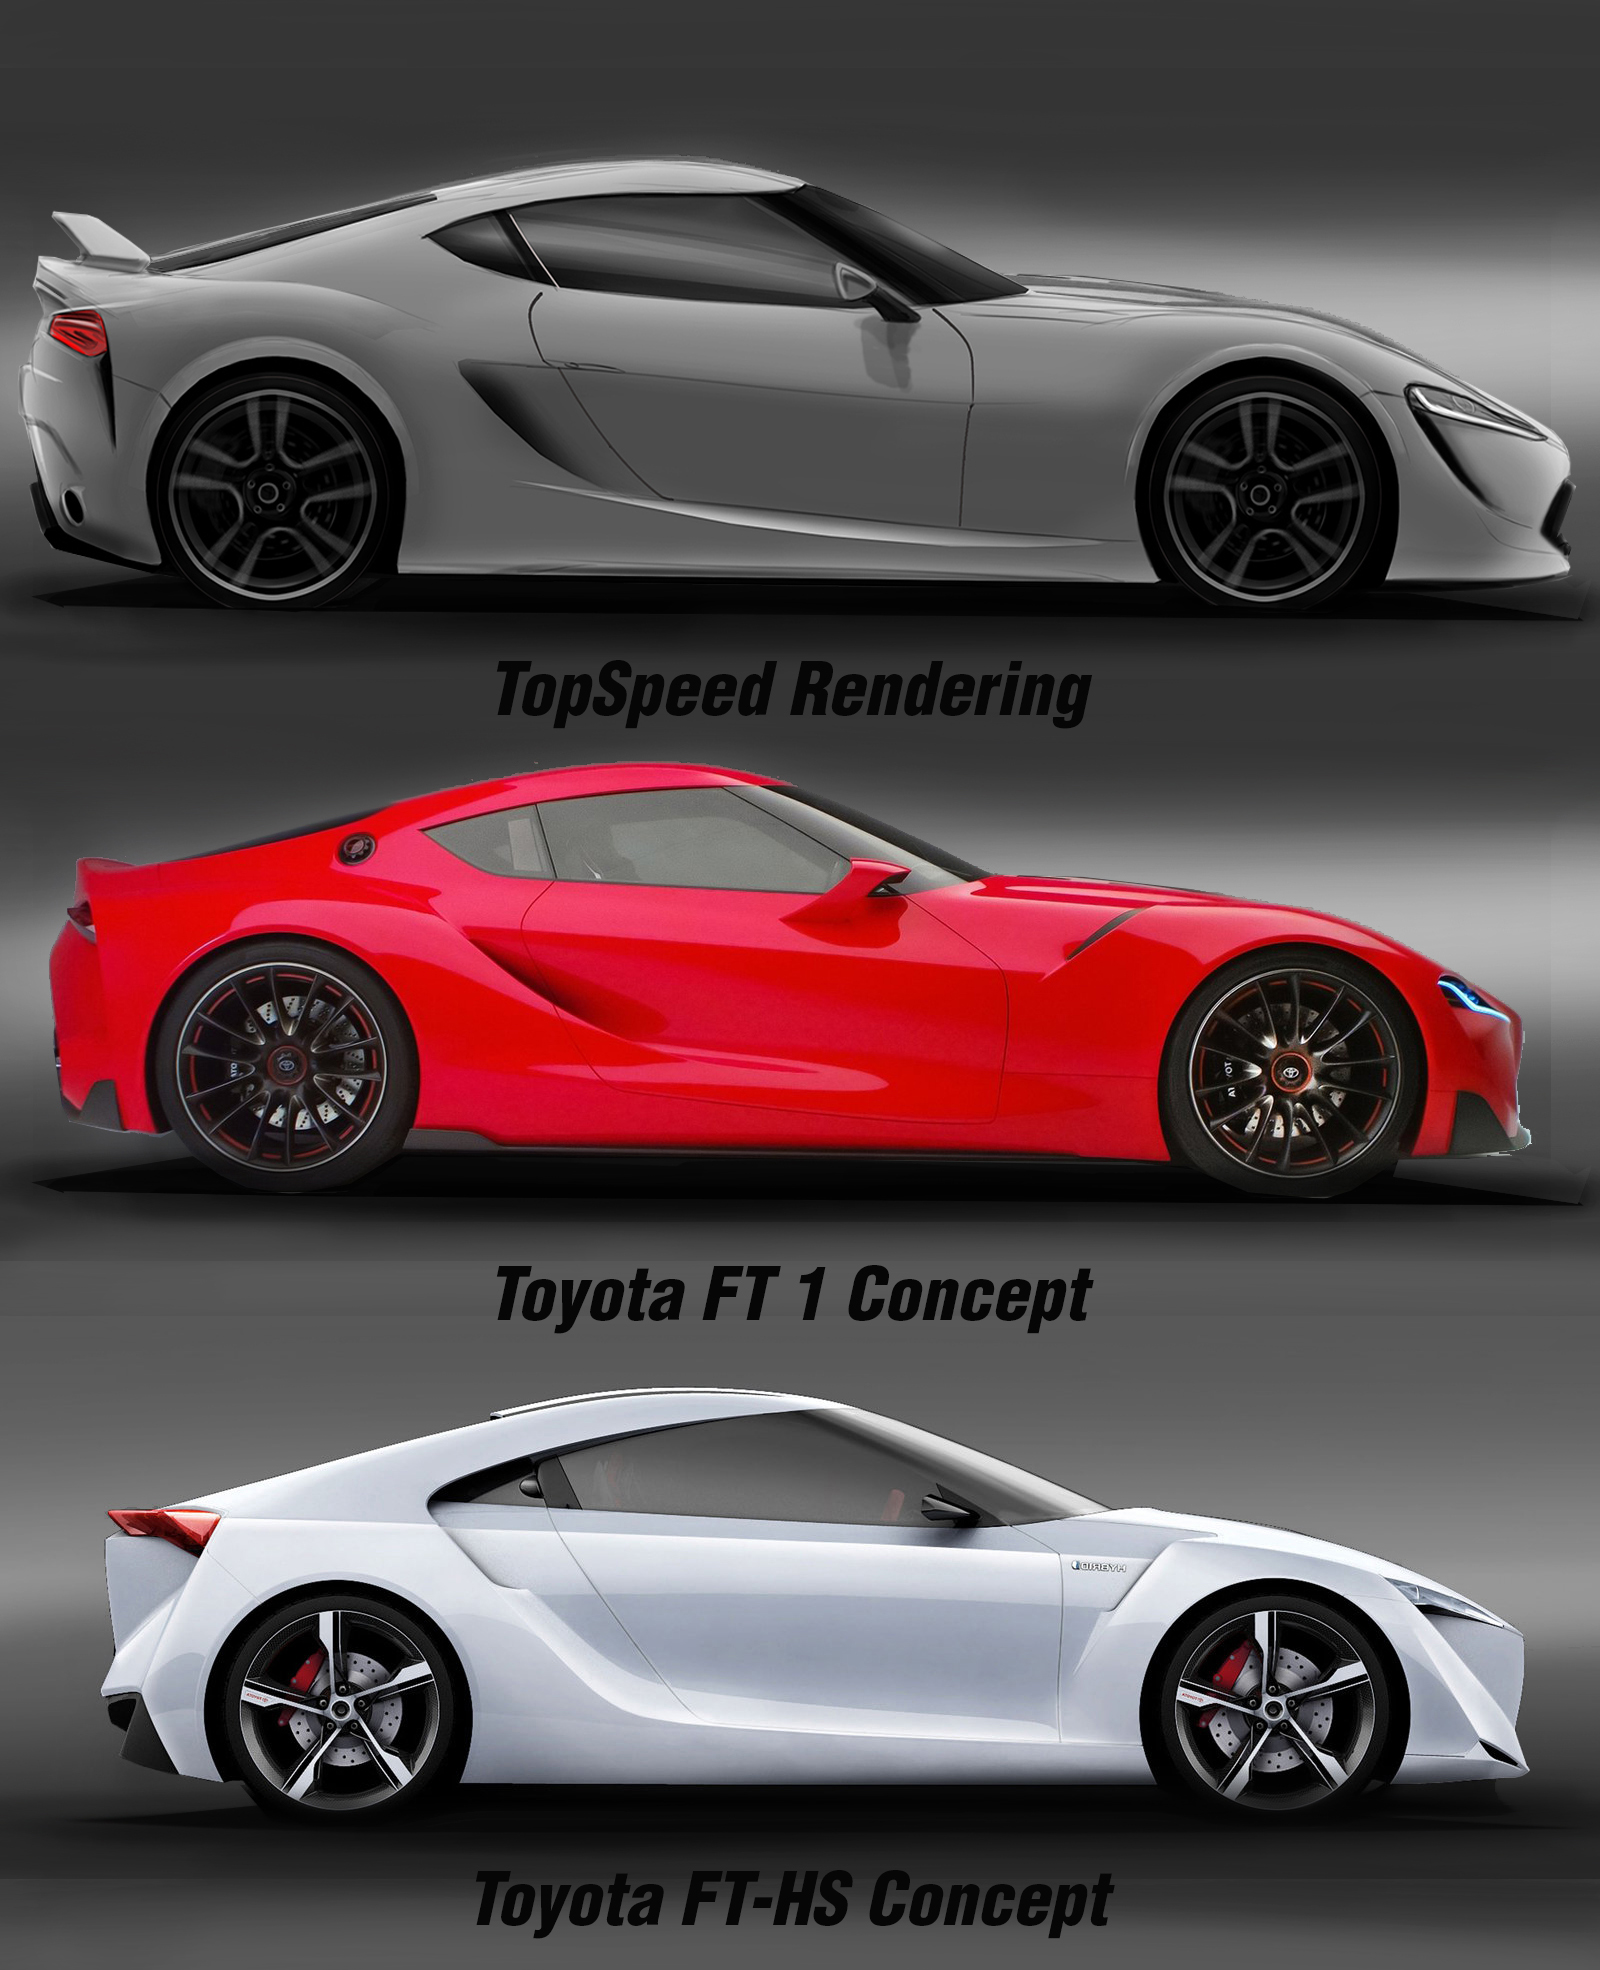 Toyota Ft1 Specs >> 2019 Toyota Supra Review - Top Speed